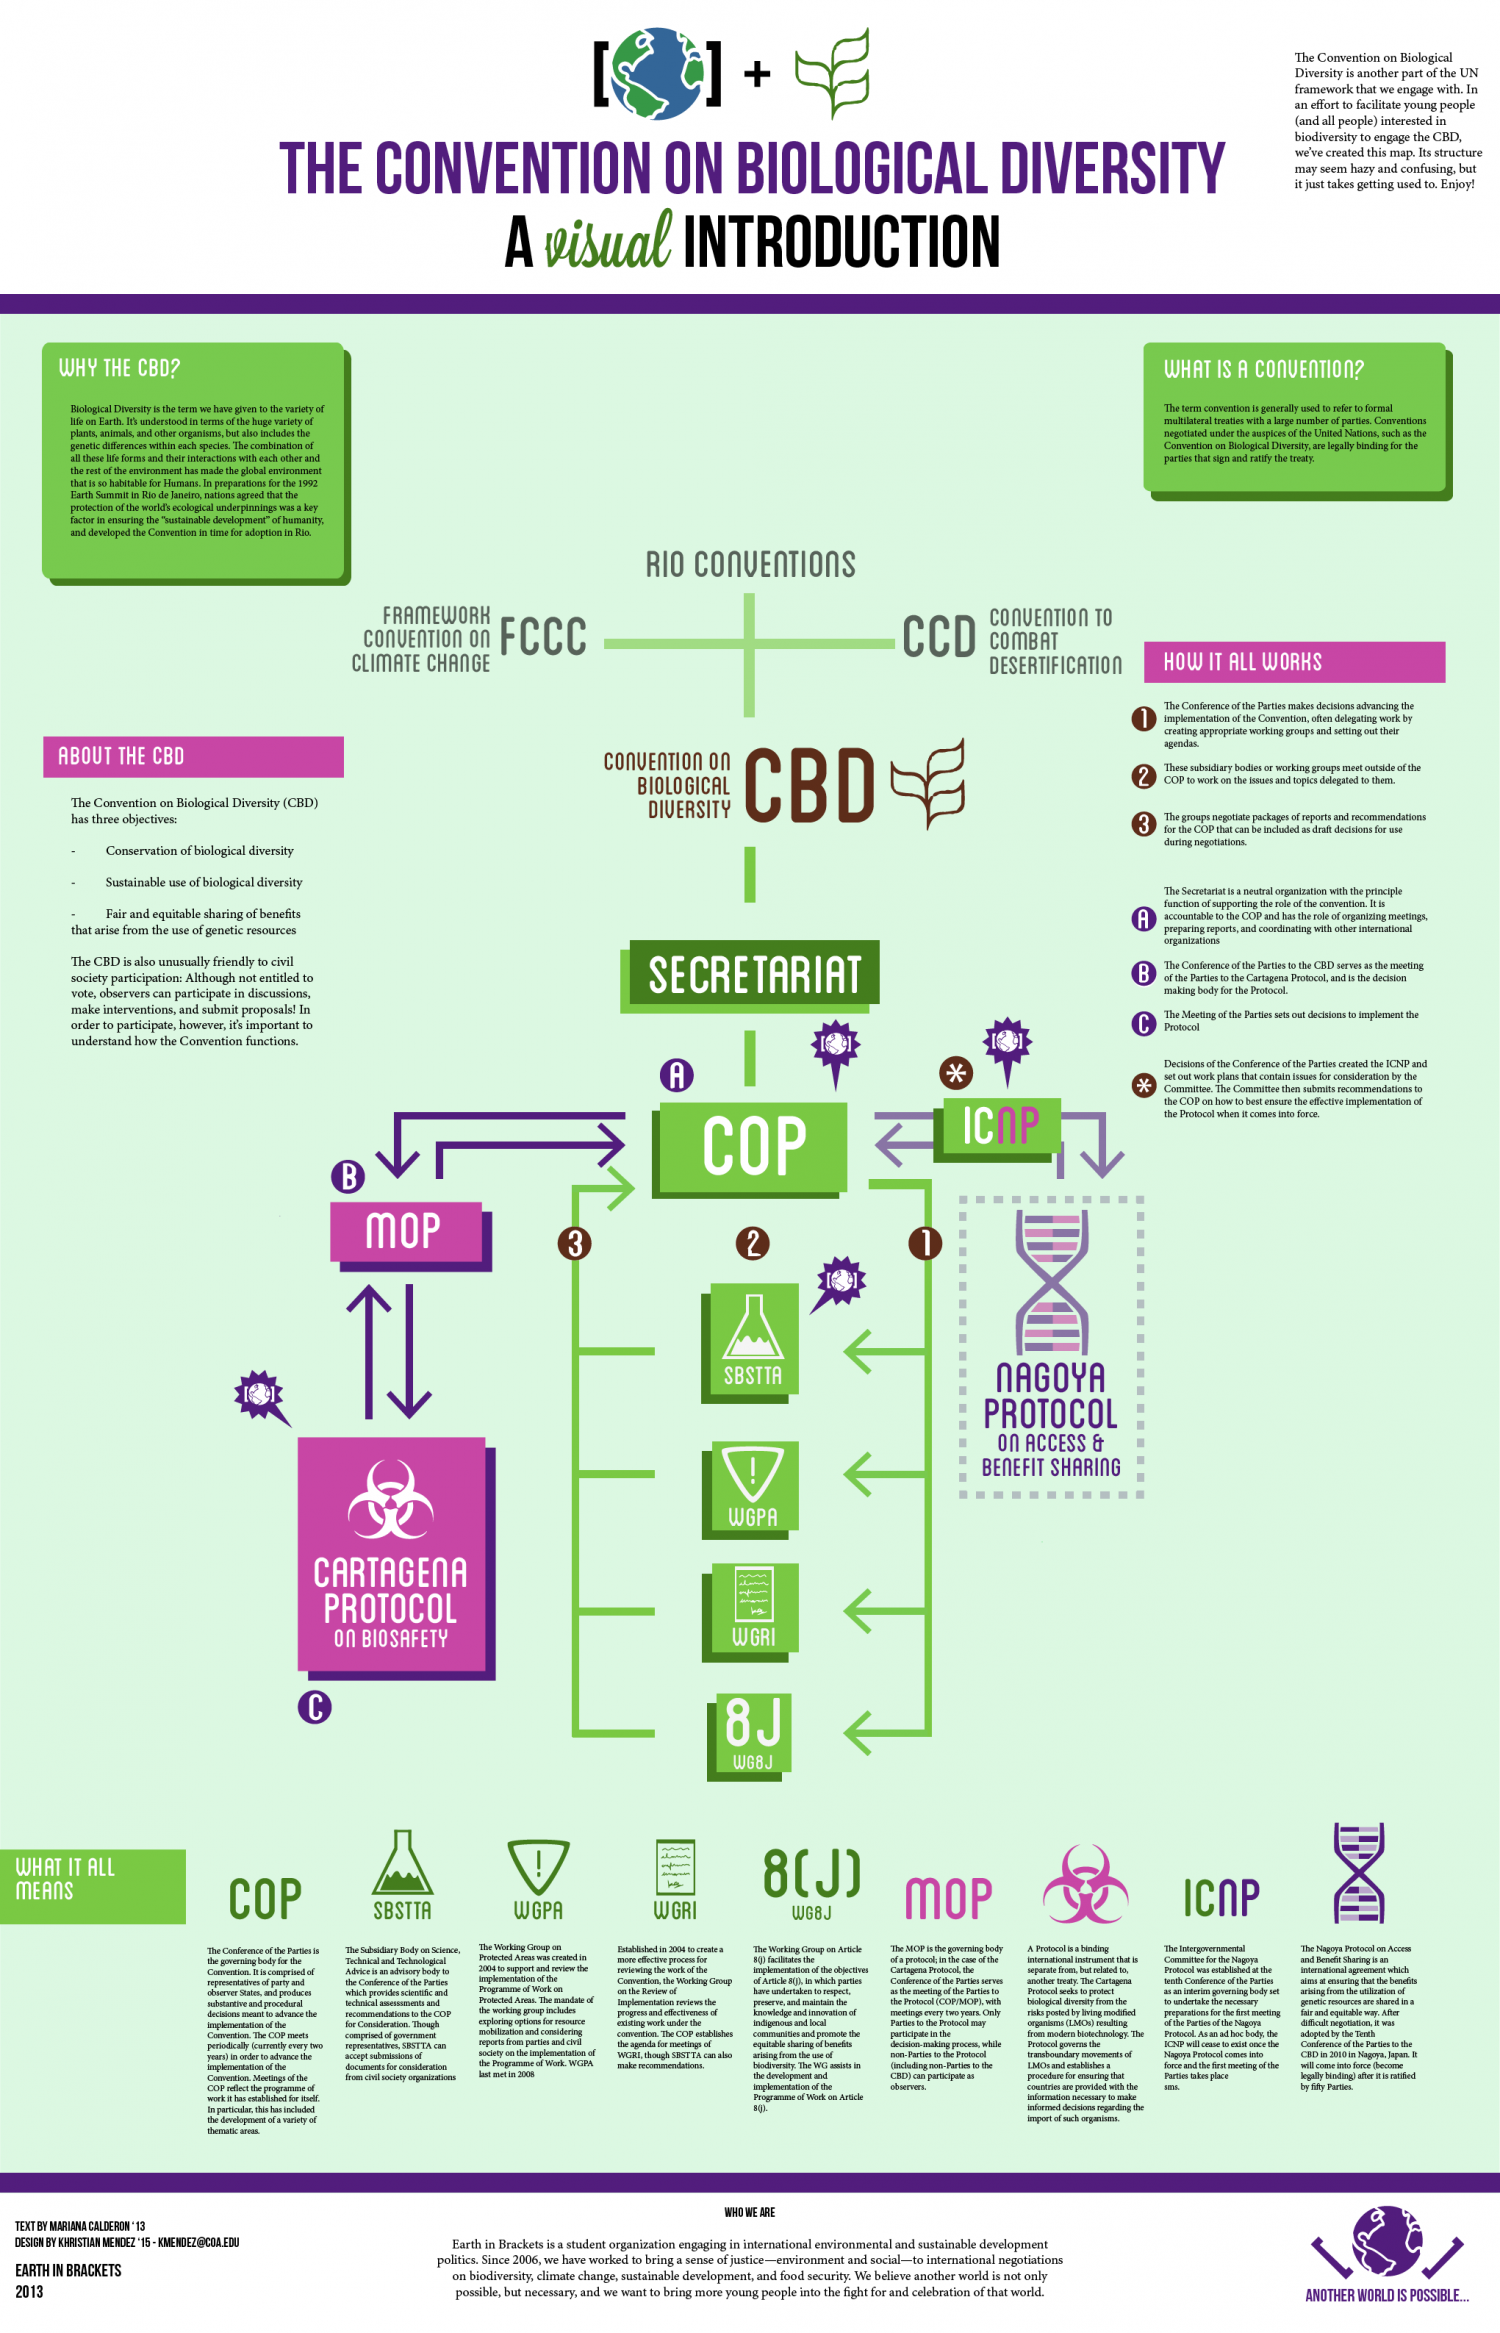 The Convention on Biological Diversity Infographic